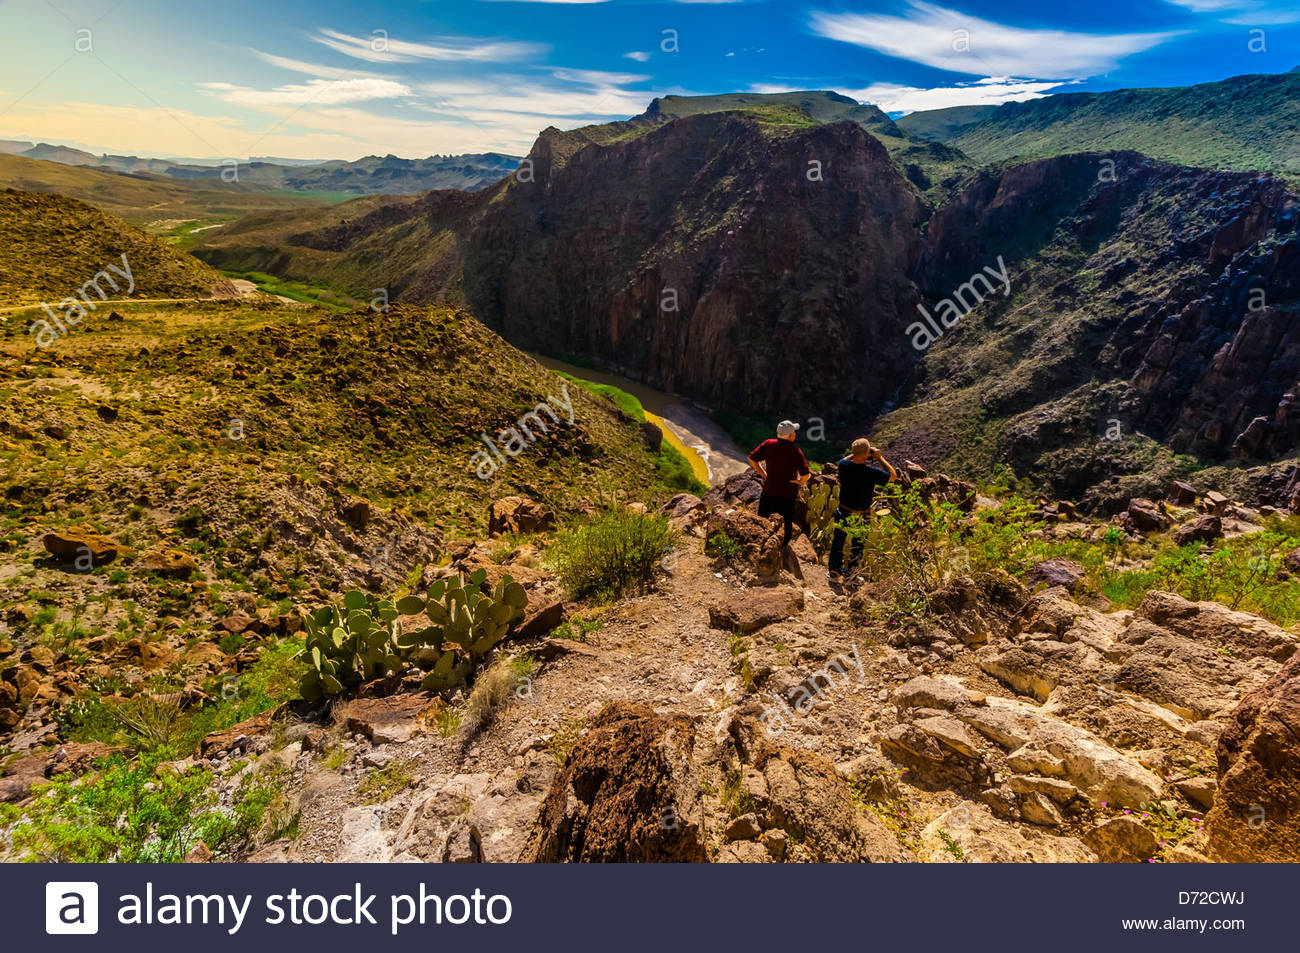 Texas State Park Stock Photos & Texas State Park Stock Images - Alamy